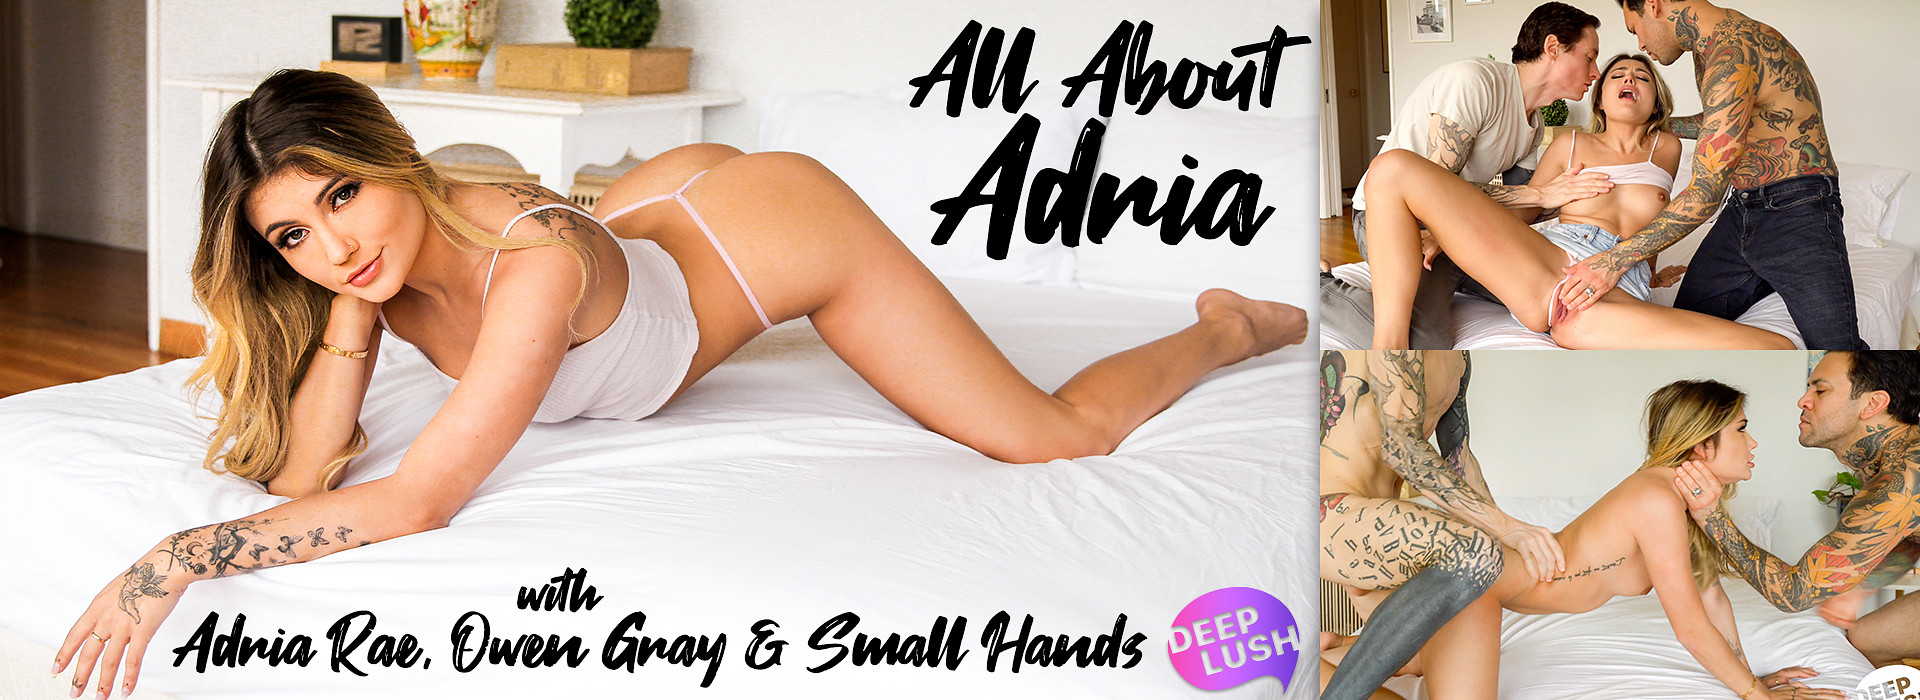 All About Adria